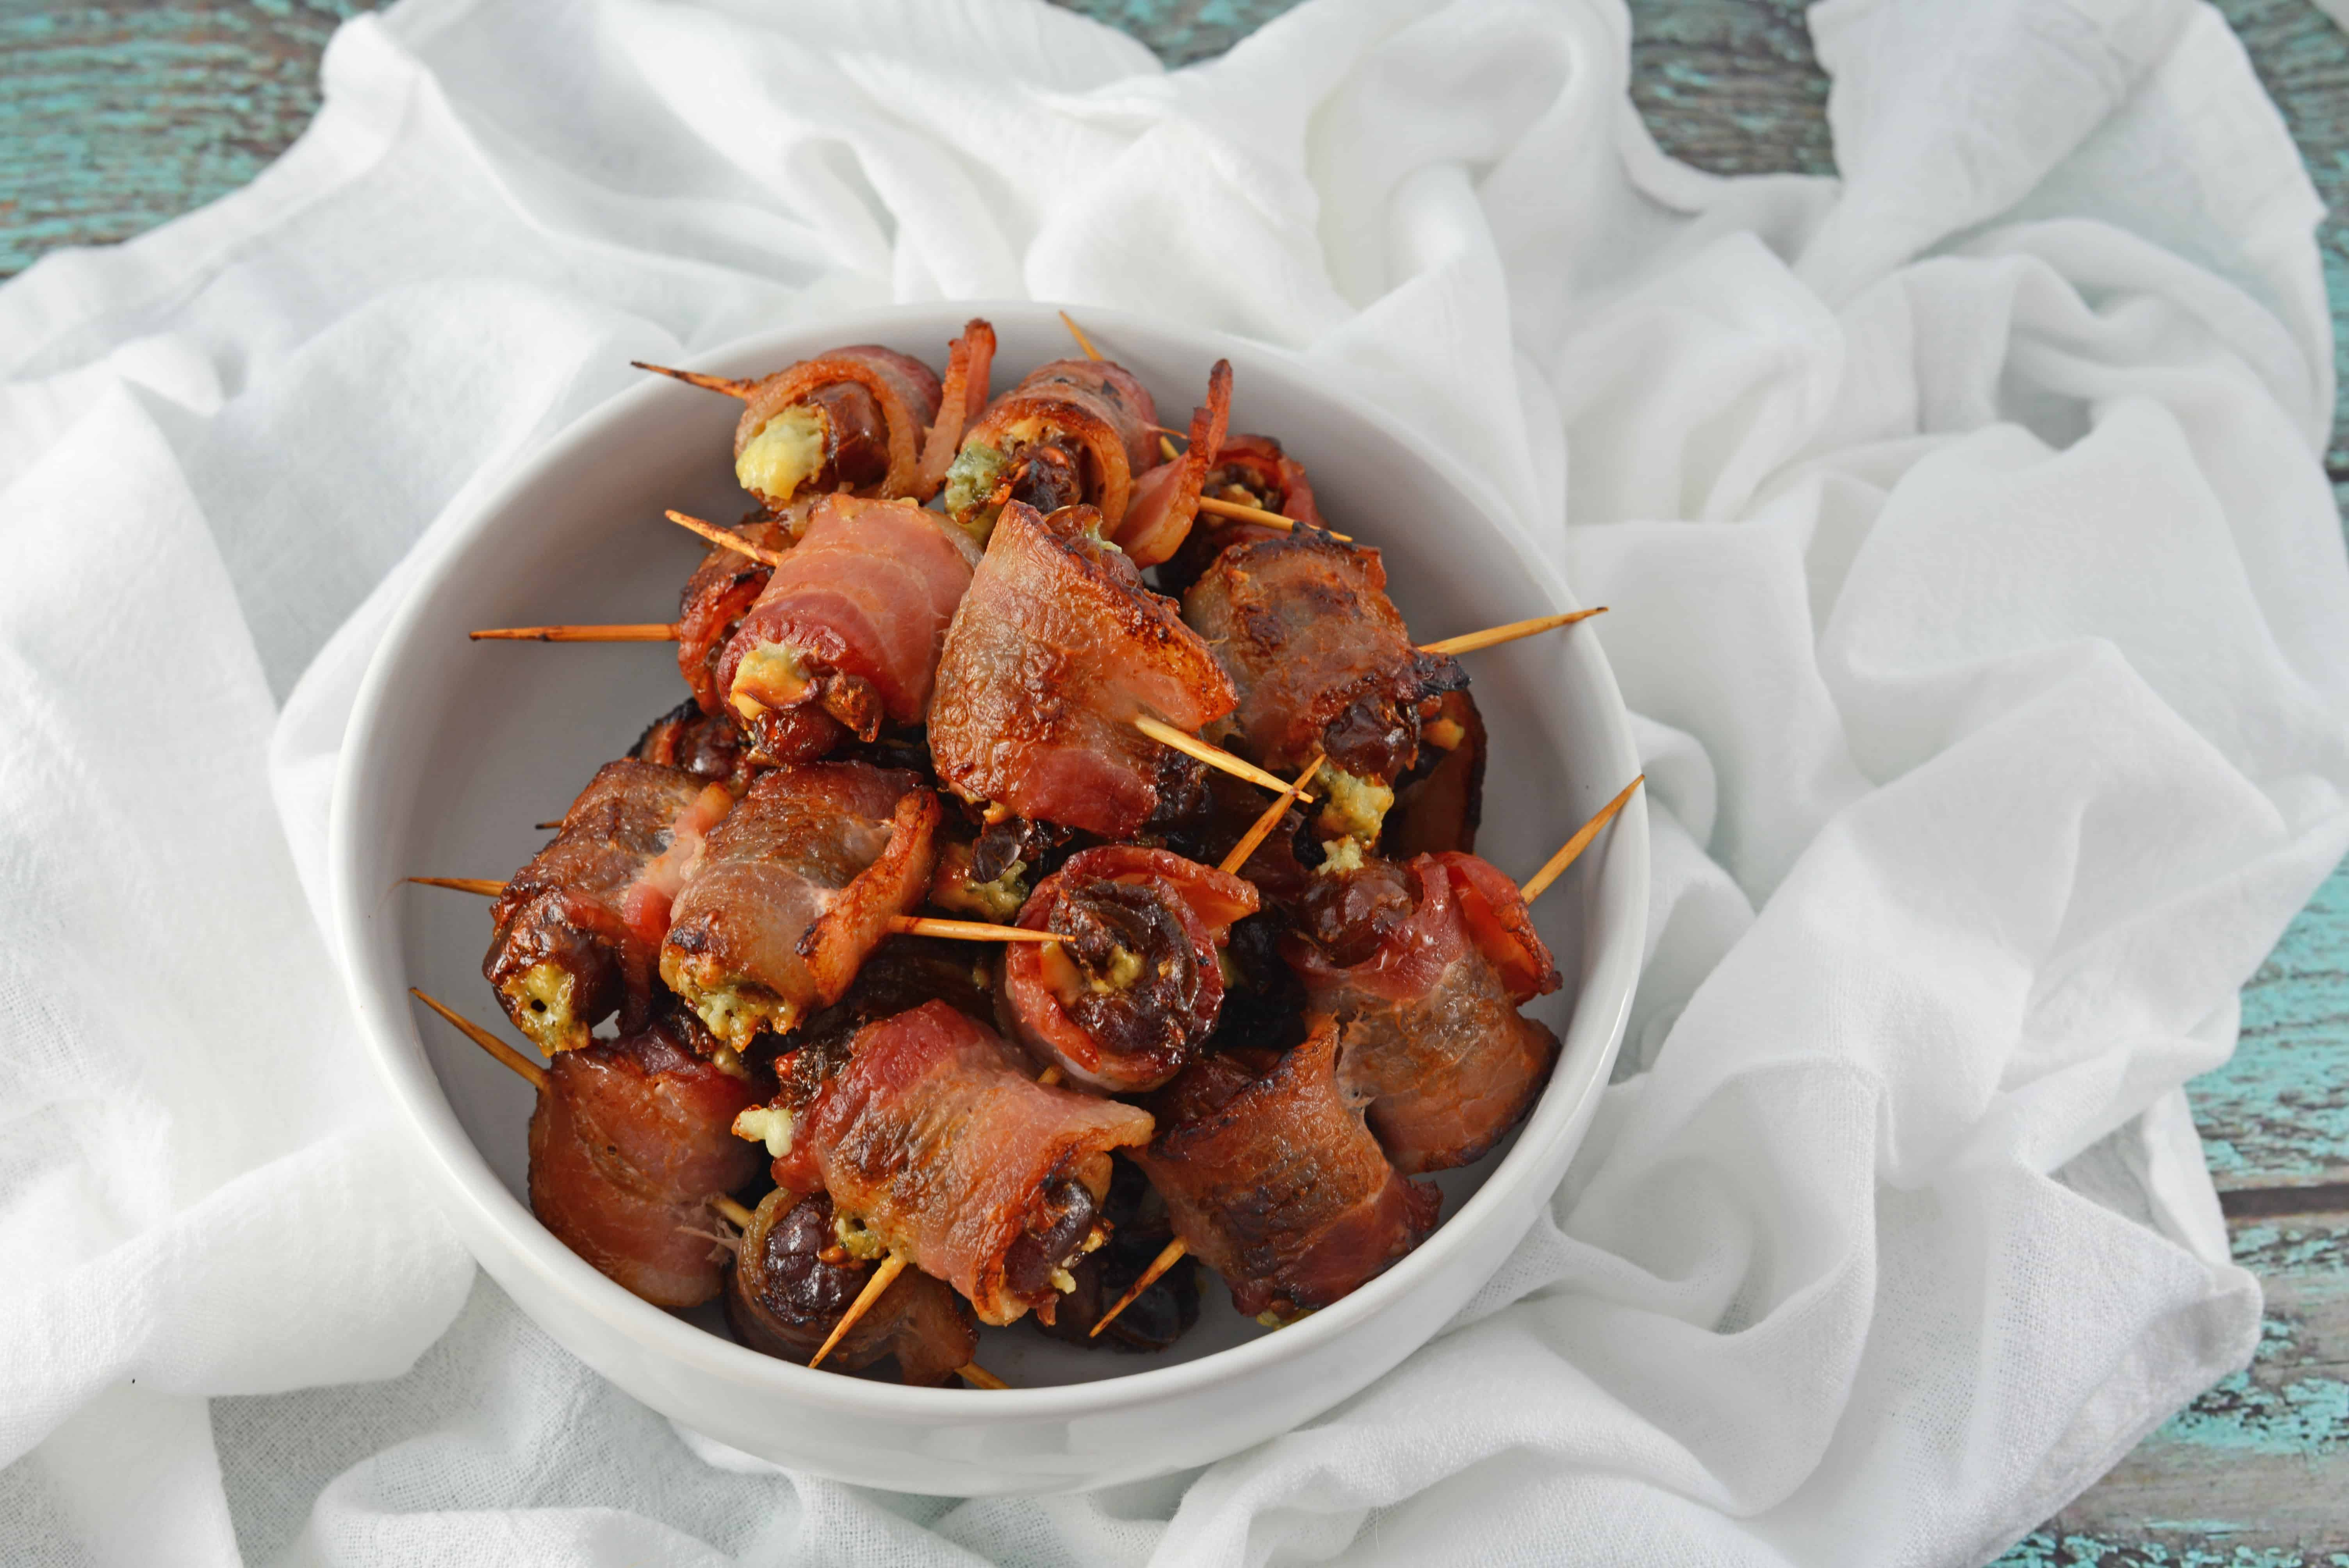 Bacon Wrapped Dates are an easy, 4 ingredient appetizer or snack perfect for watching the big game in your pajamas or a fancy cocktail party.